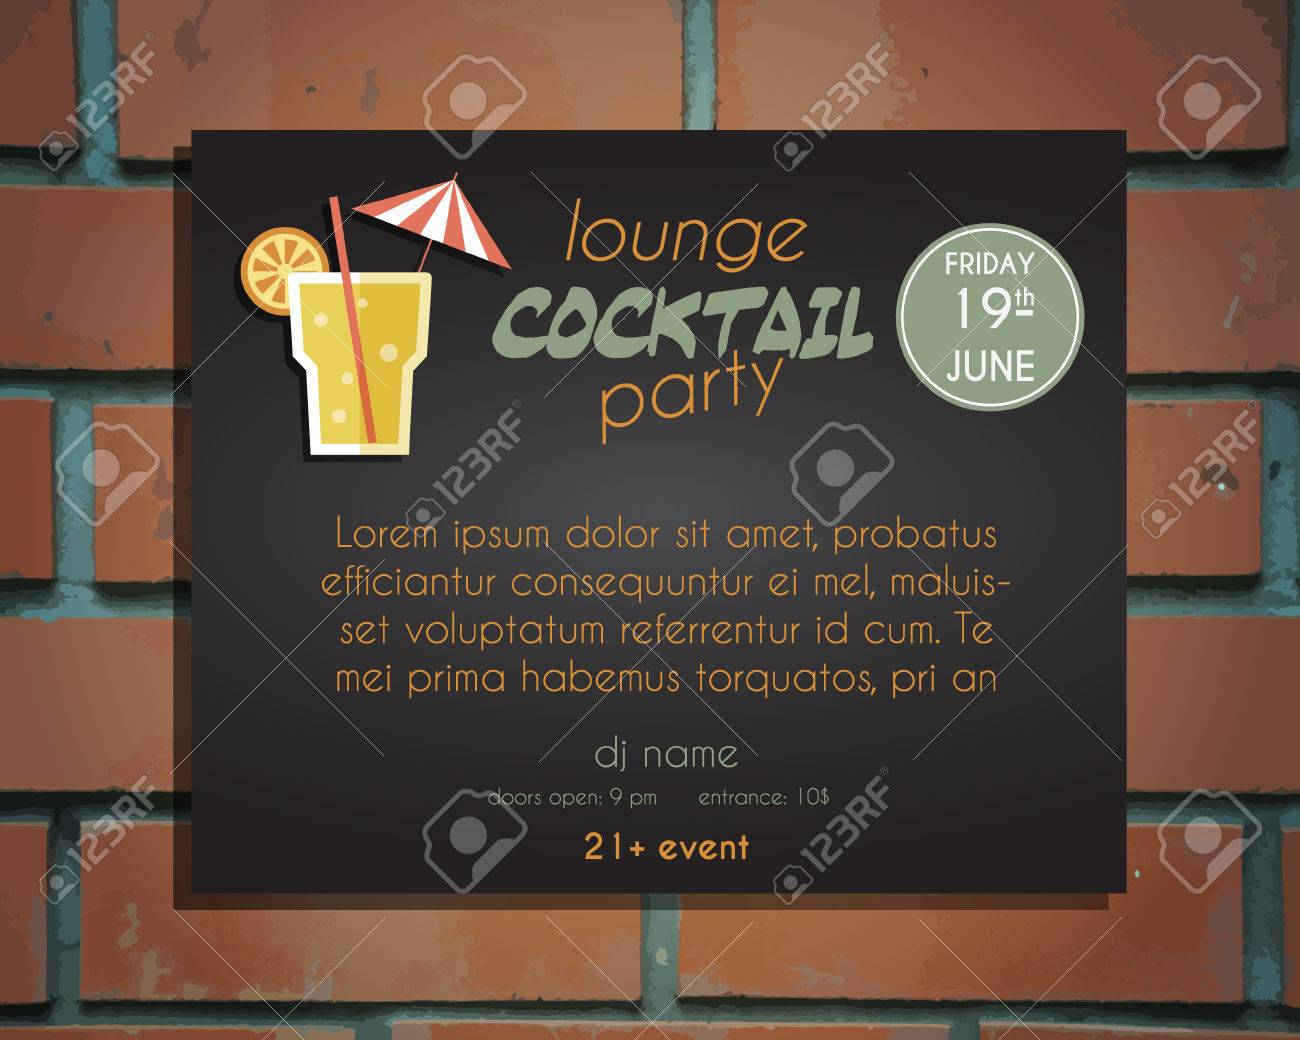 lounge cocktail party poster invitation template screw driver lounge cocktail party poster invitation template screw driver cocktail vintage design for bar or